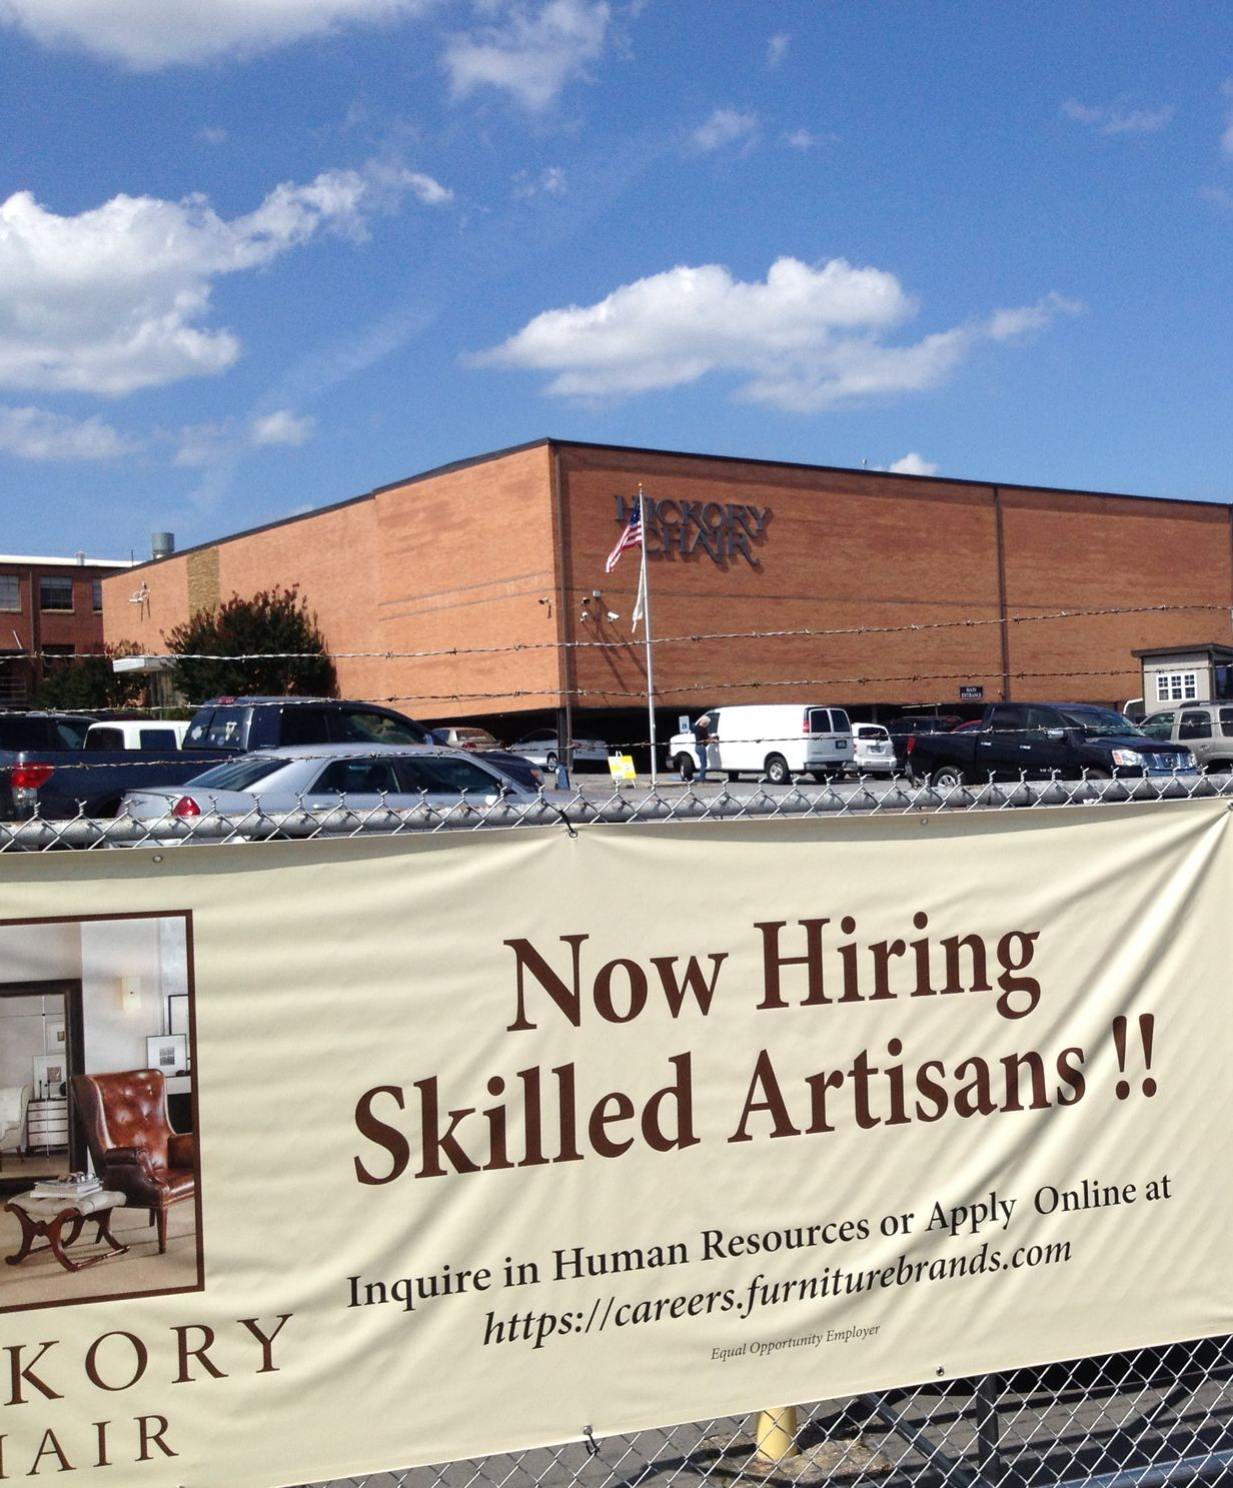 BOOM: Furniture 'Renaissance' in NC Drives Demand for Skilled Workers | First In Freedom Daily